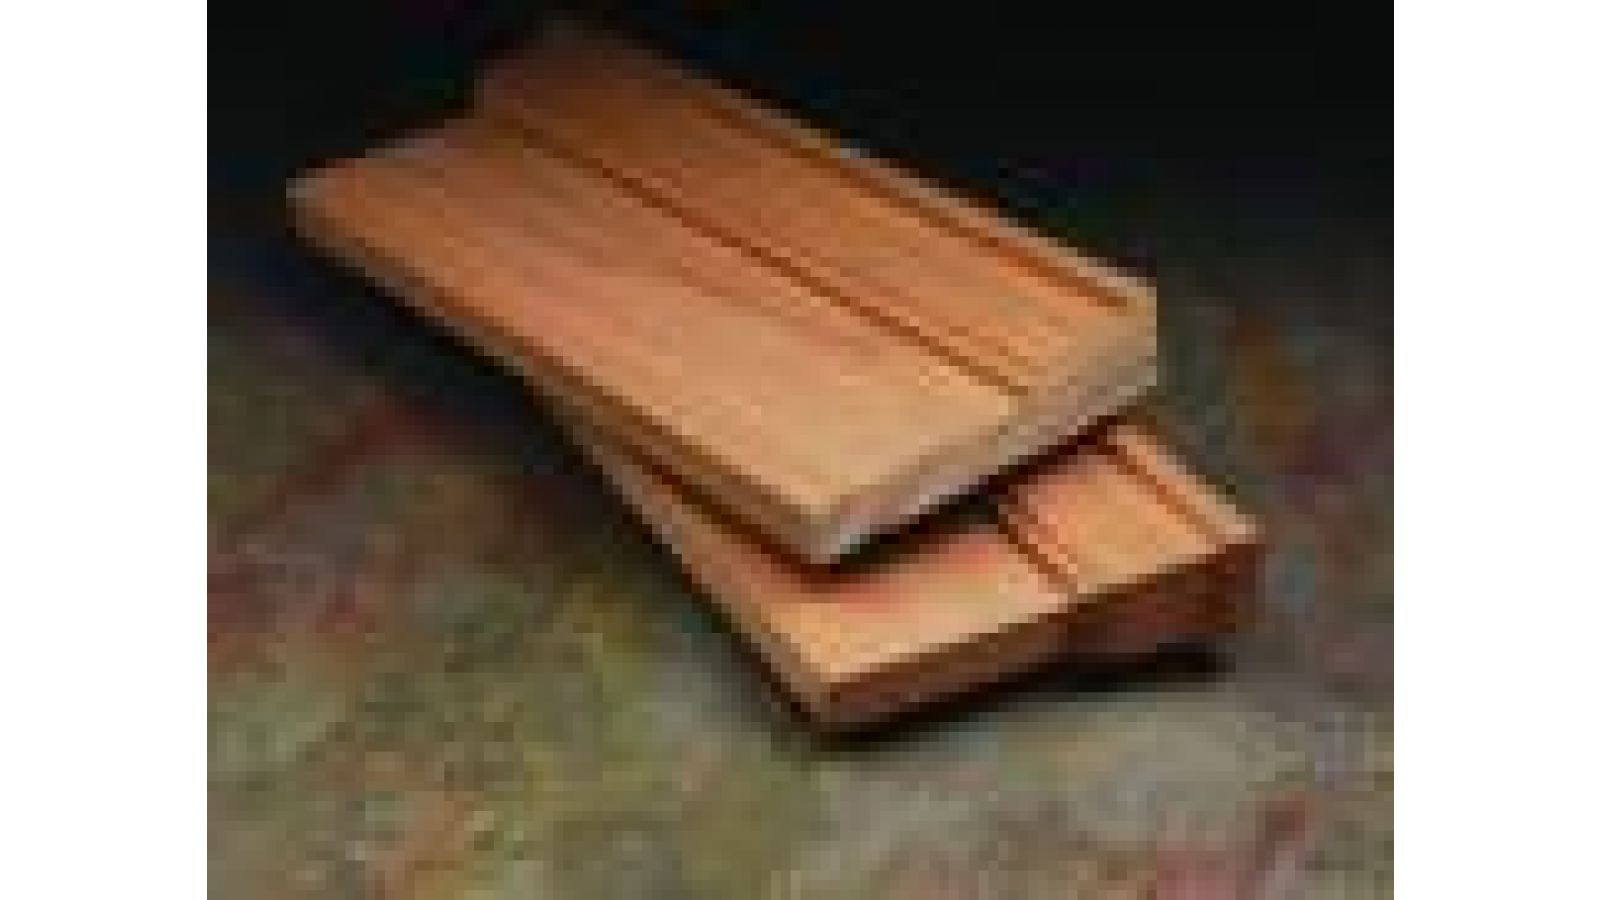 Wood-wrapped mouldings and millwork